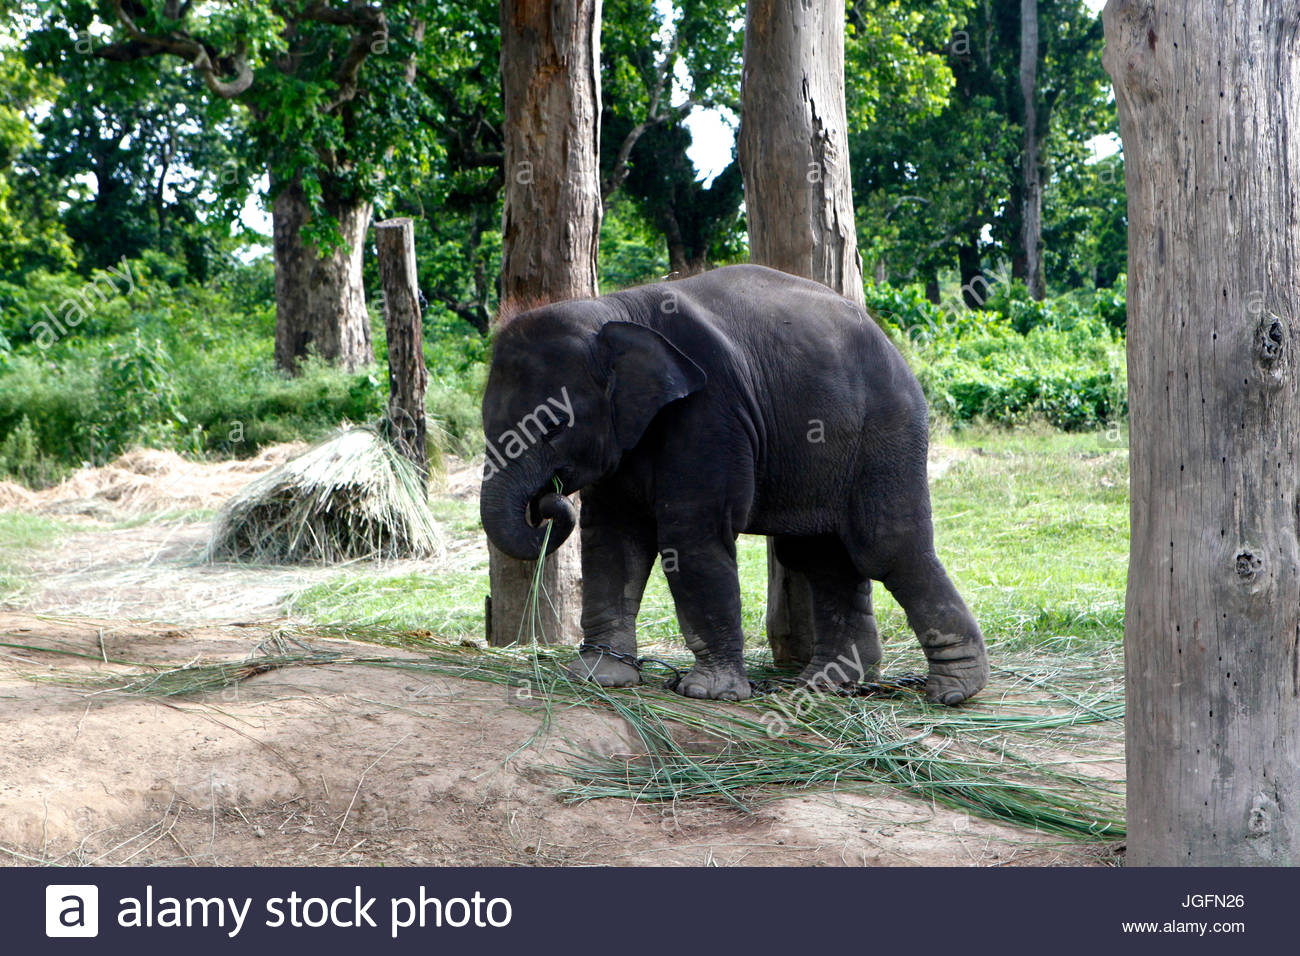 An elephant calf at the Elephant Breeding Center in Chitwan National Park. - Stock Image